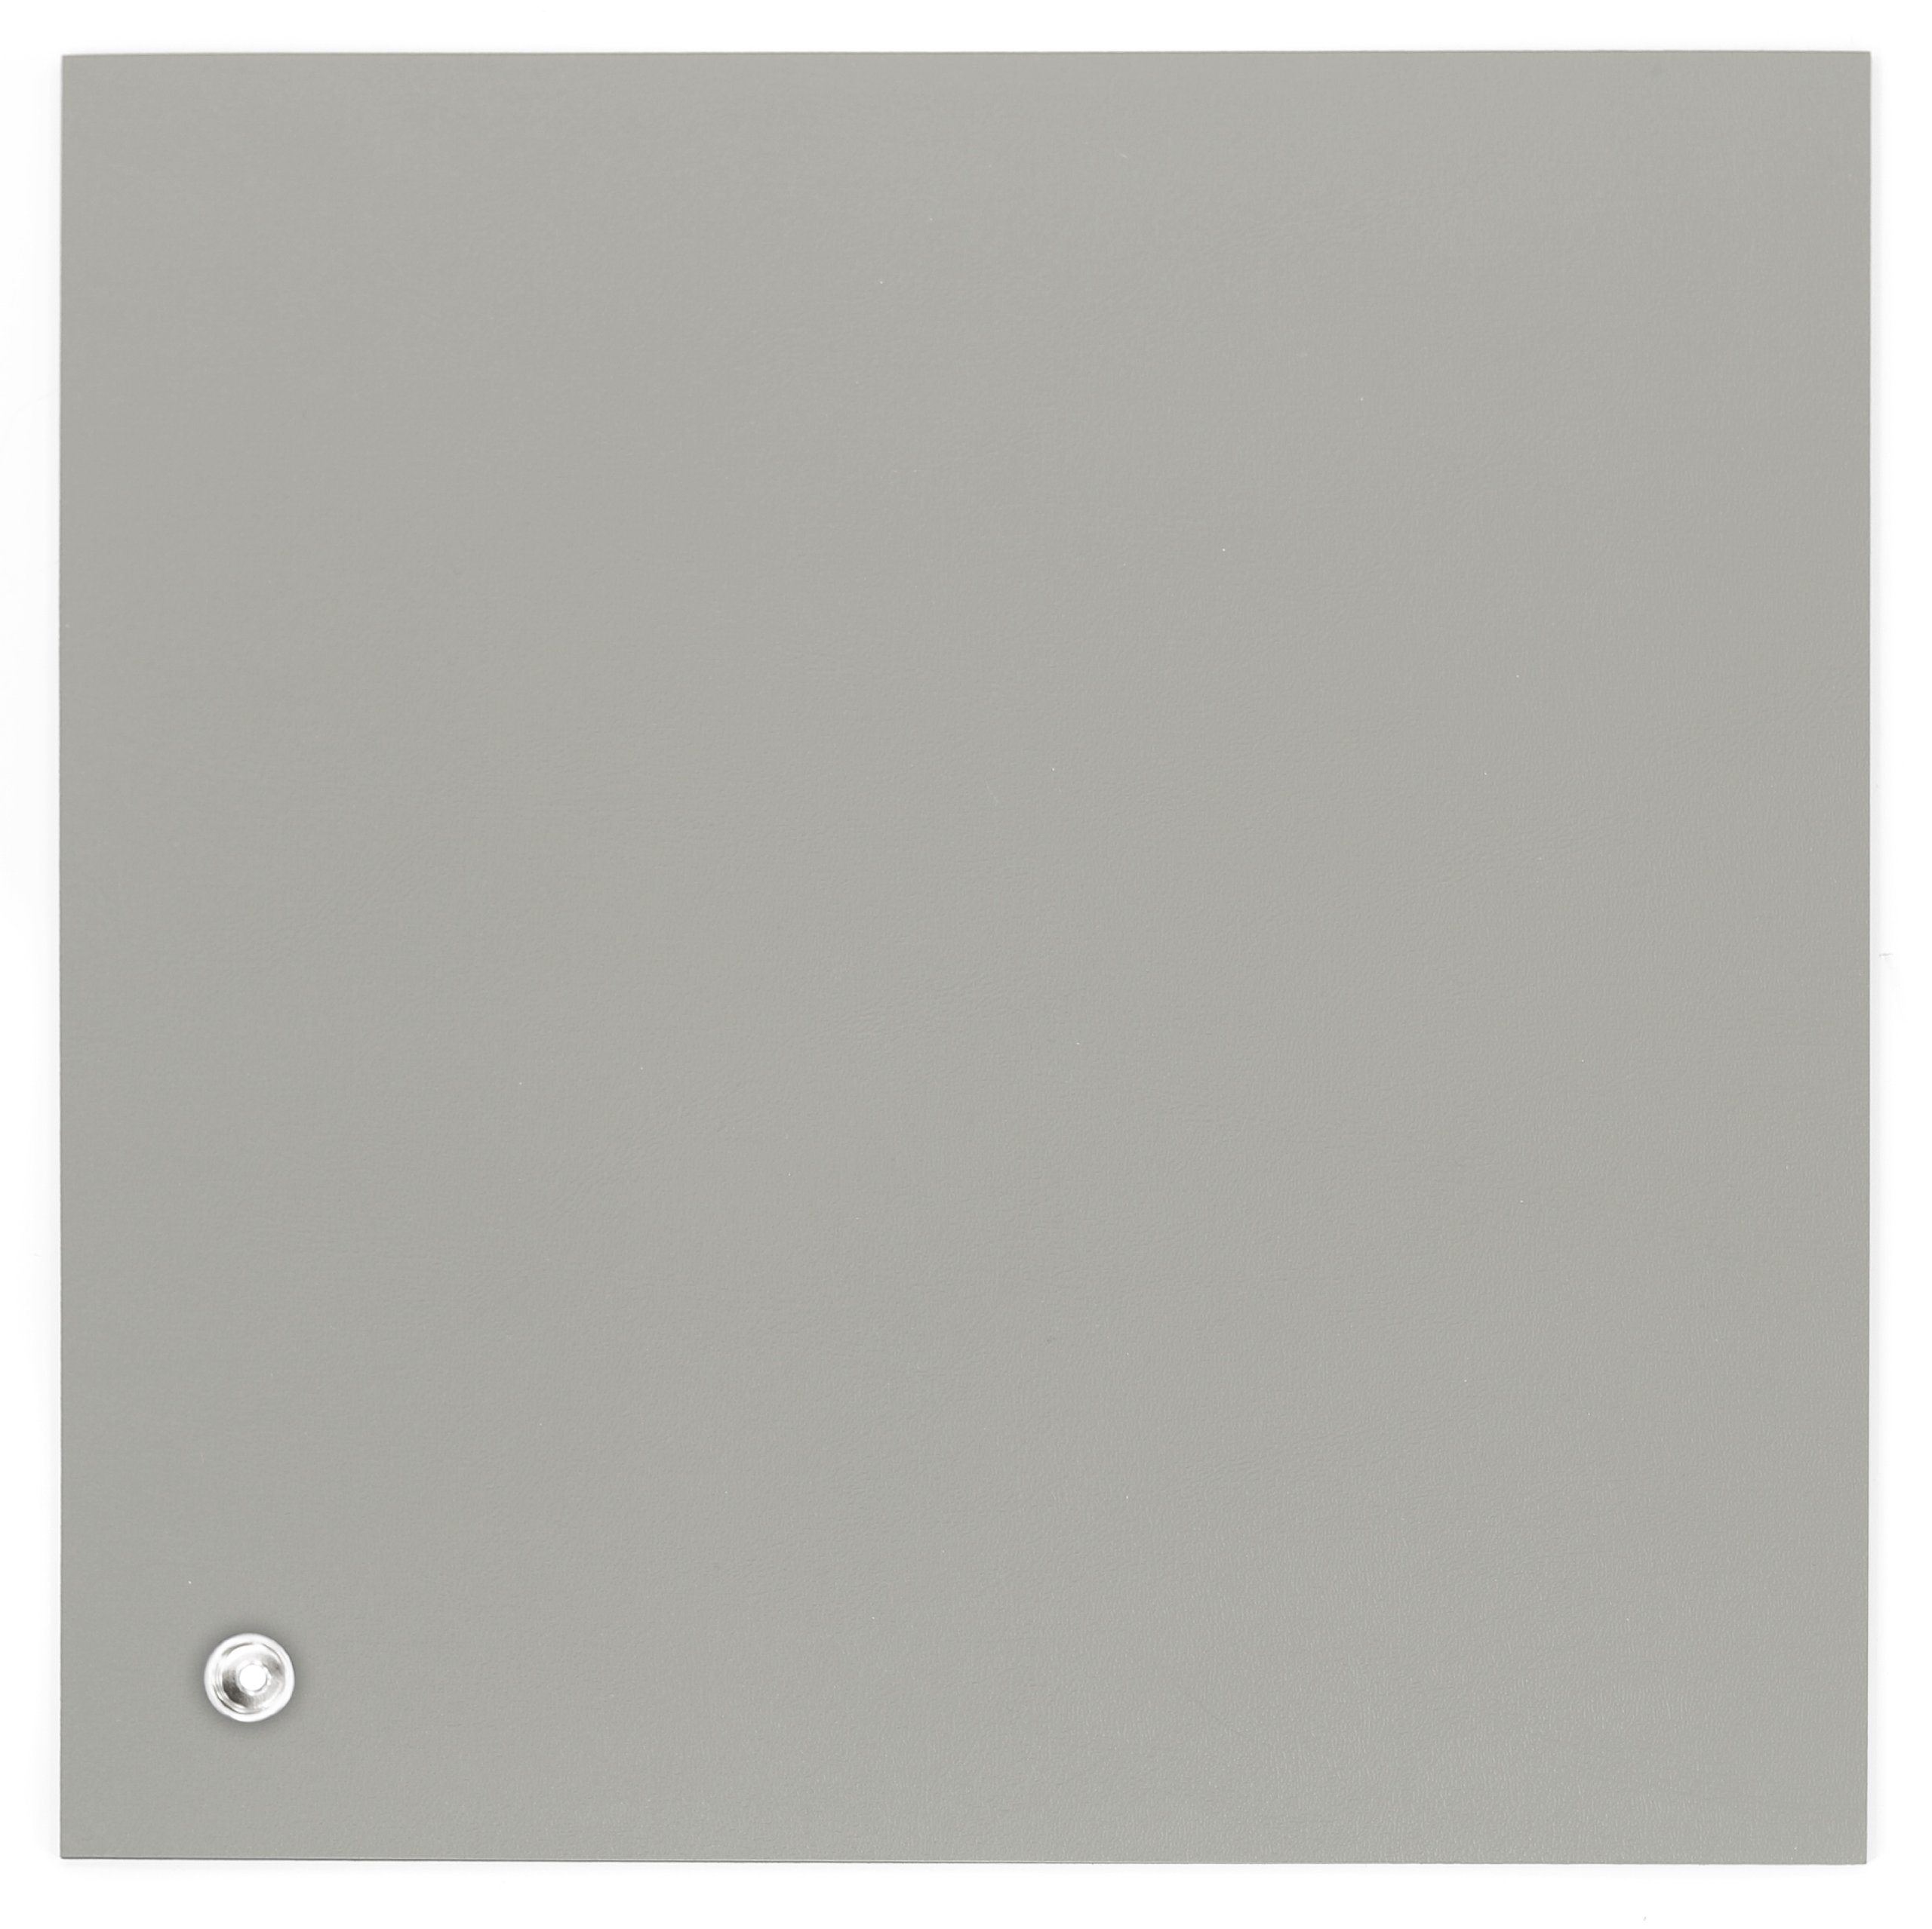 Botron B3425 Dissipative Gray 3 Layer Rubber Mat 60'' x 24'' x 0.12'' with Hardware and Grounding